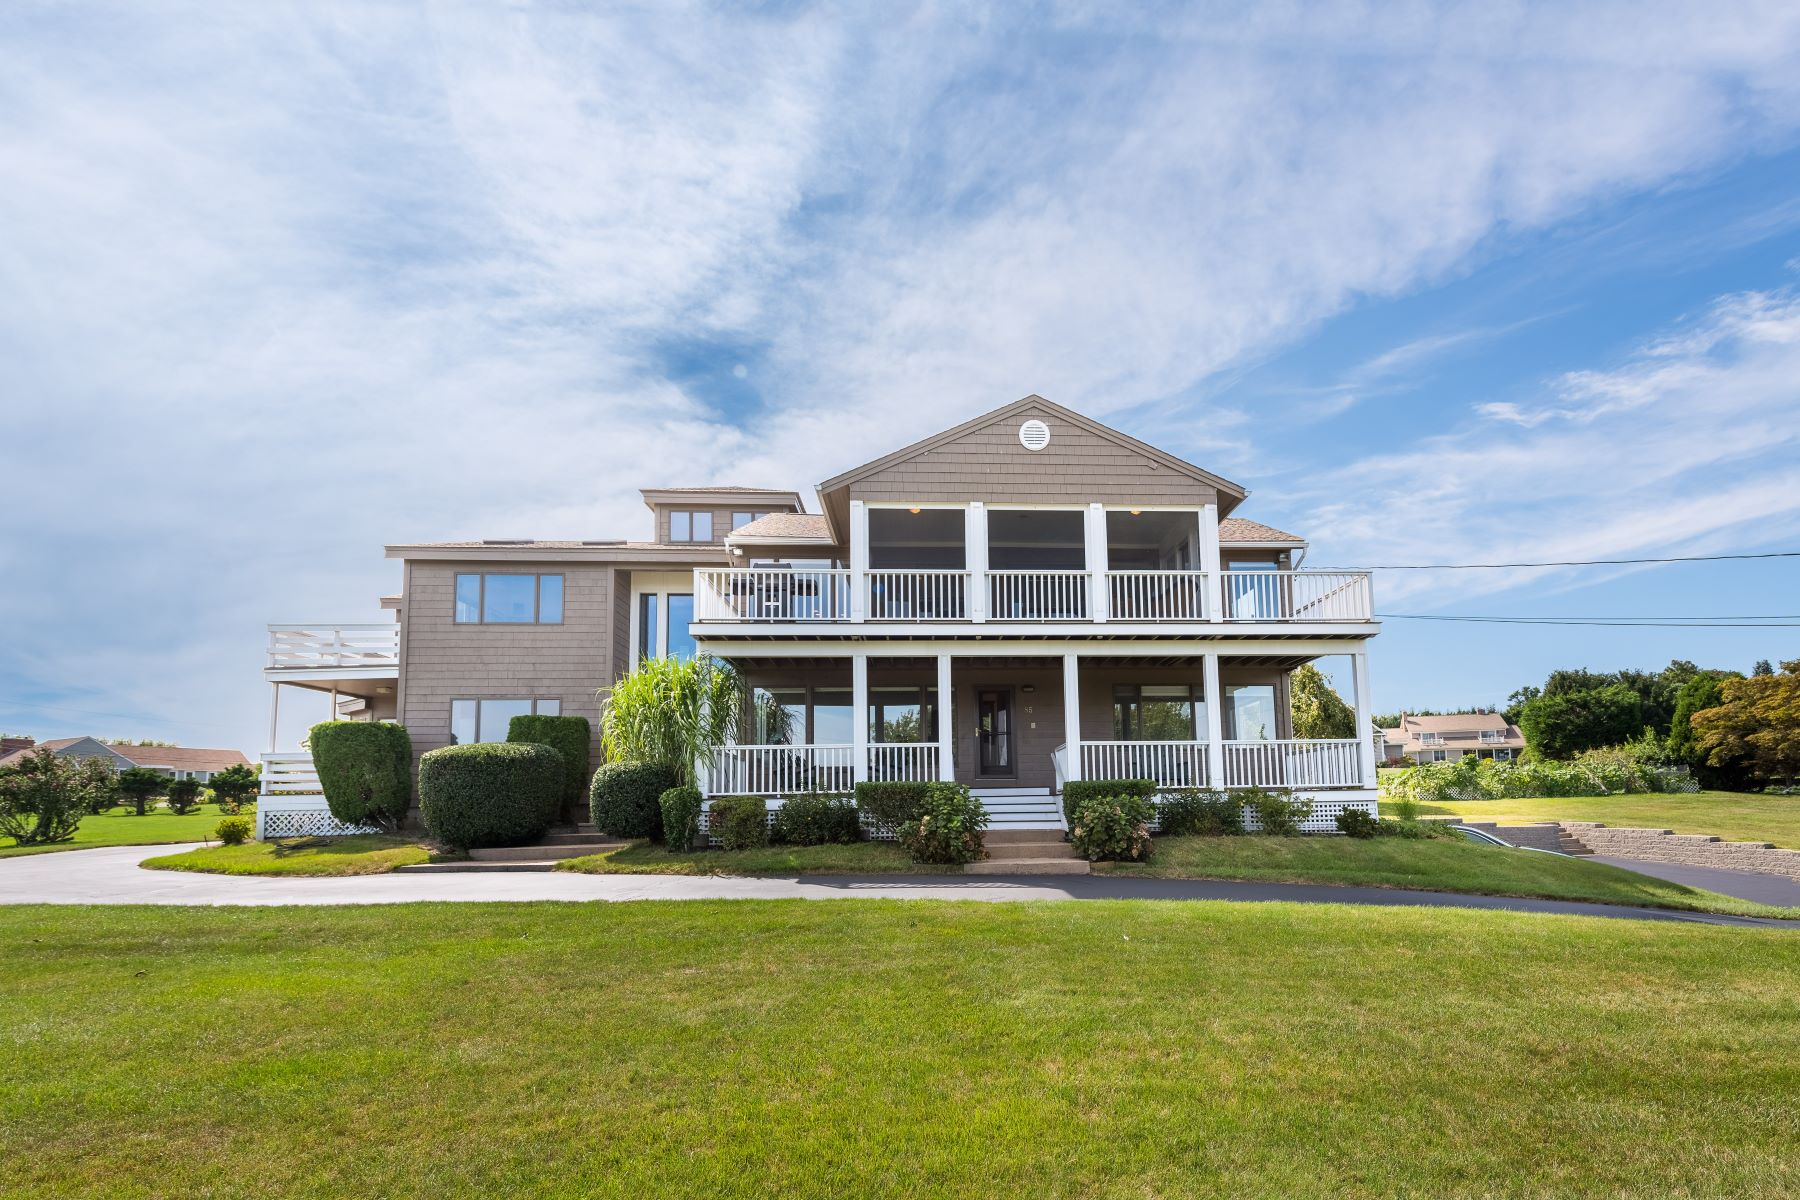 Single Family Homes for Sale at 85 North Cliff Drive, Narragansett, RI Narragansett, Rhode Island 02882 United States